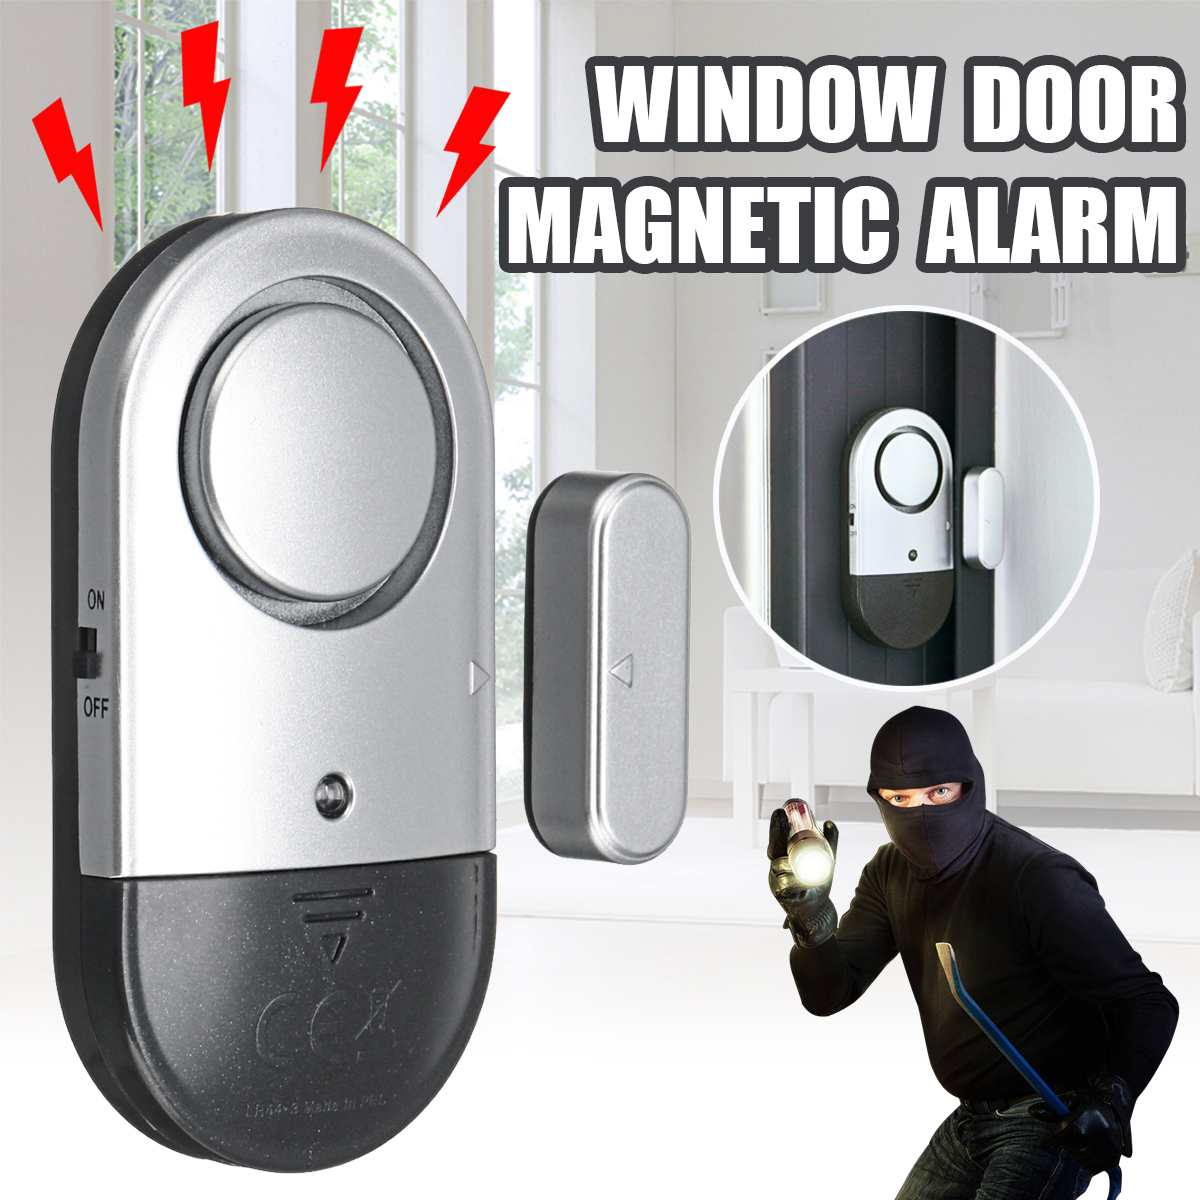 120dB Big Sound Alarm Magnetic Sensor Wireless Home Window Door Burglar Security Alarm System For Home Apartment Office Safety